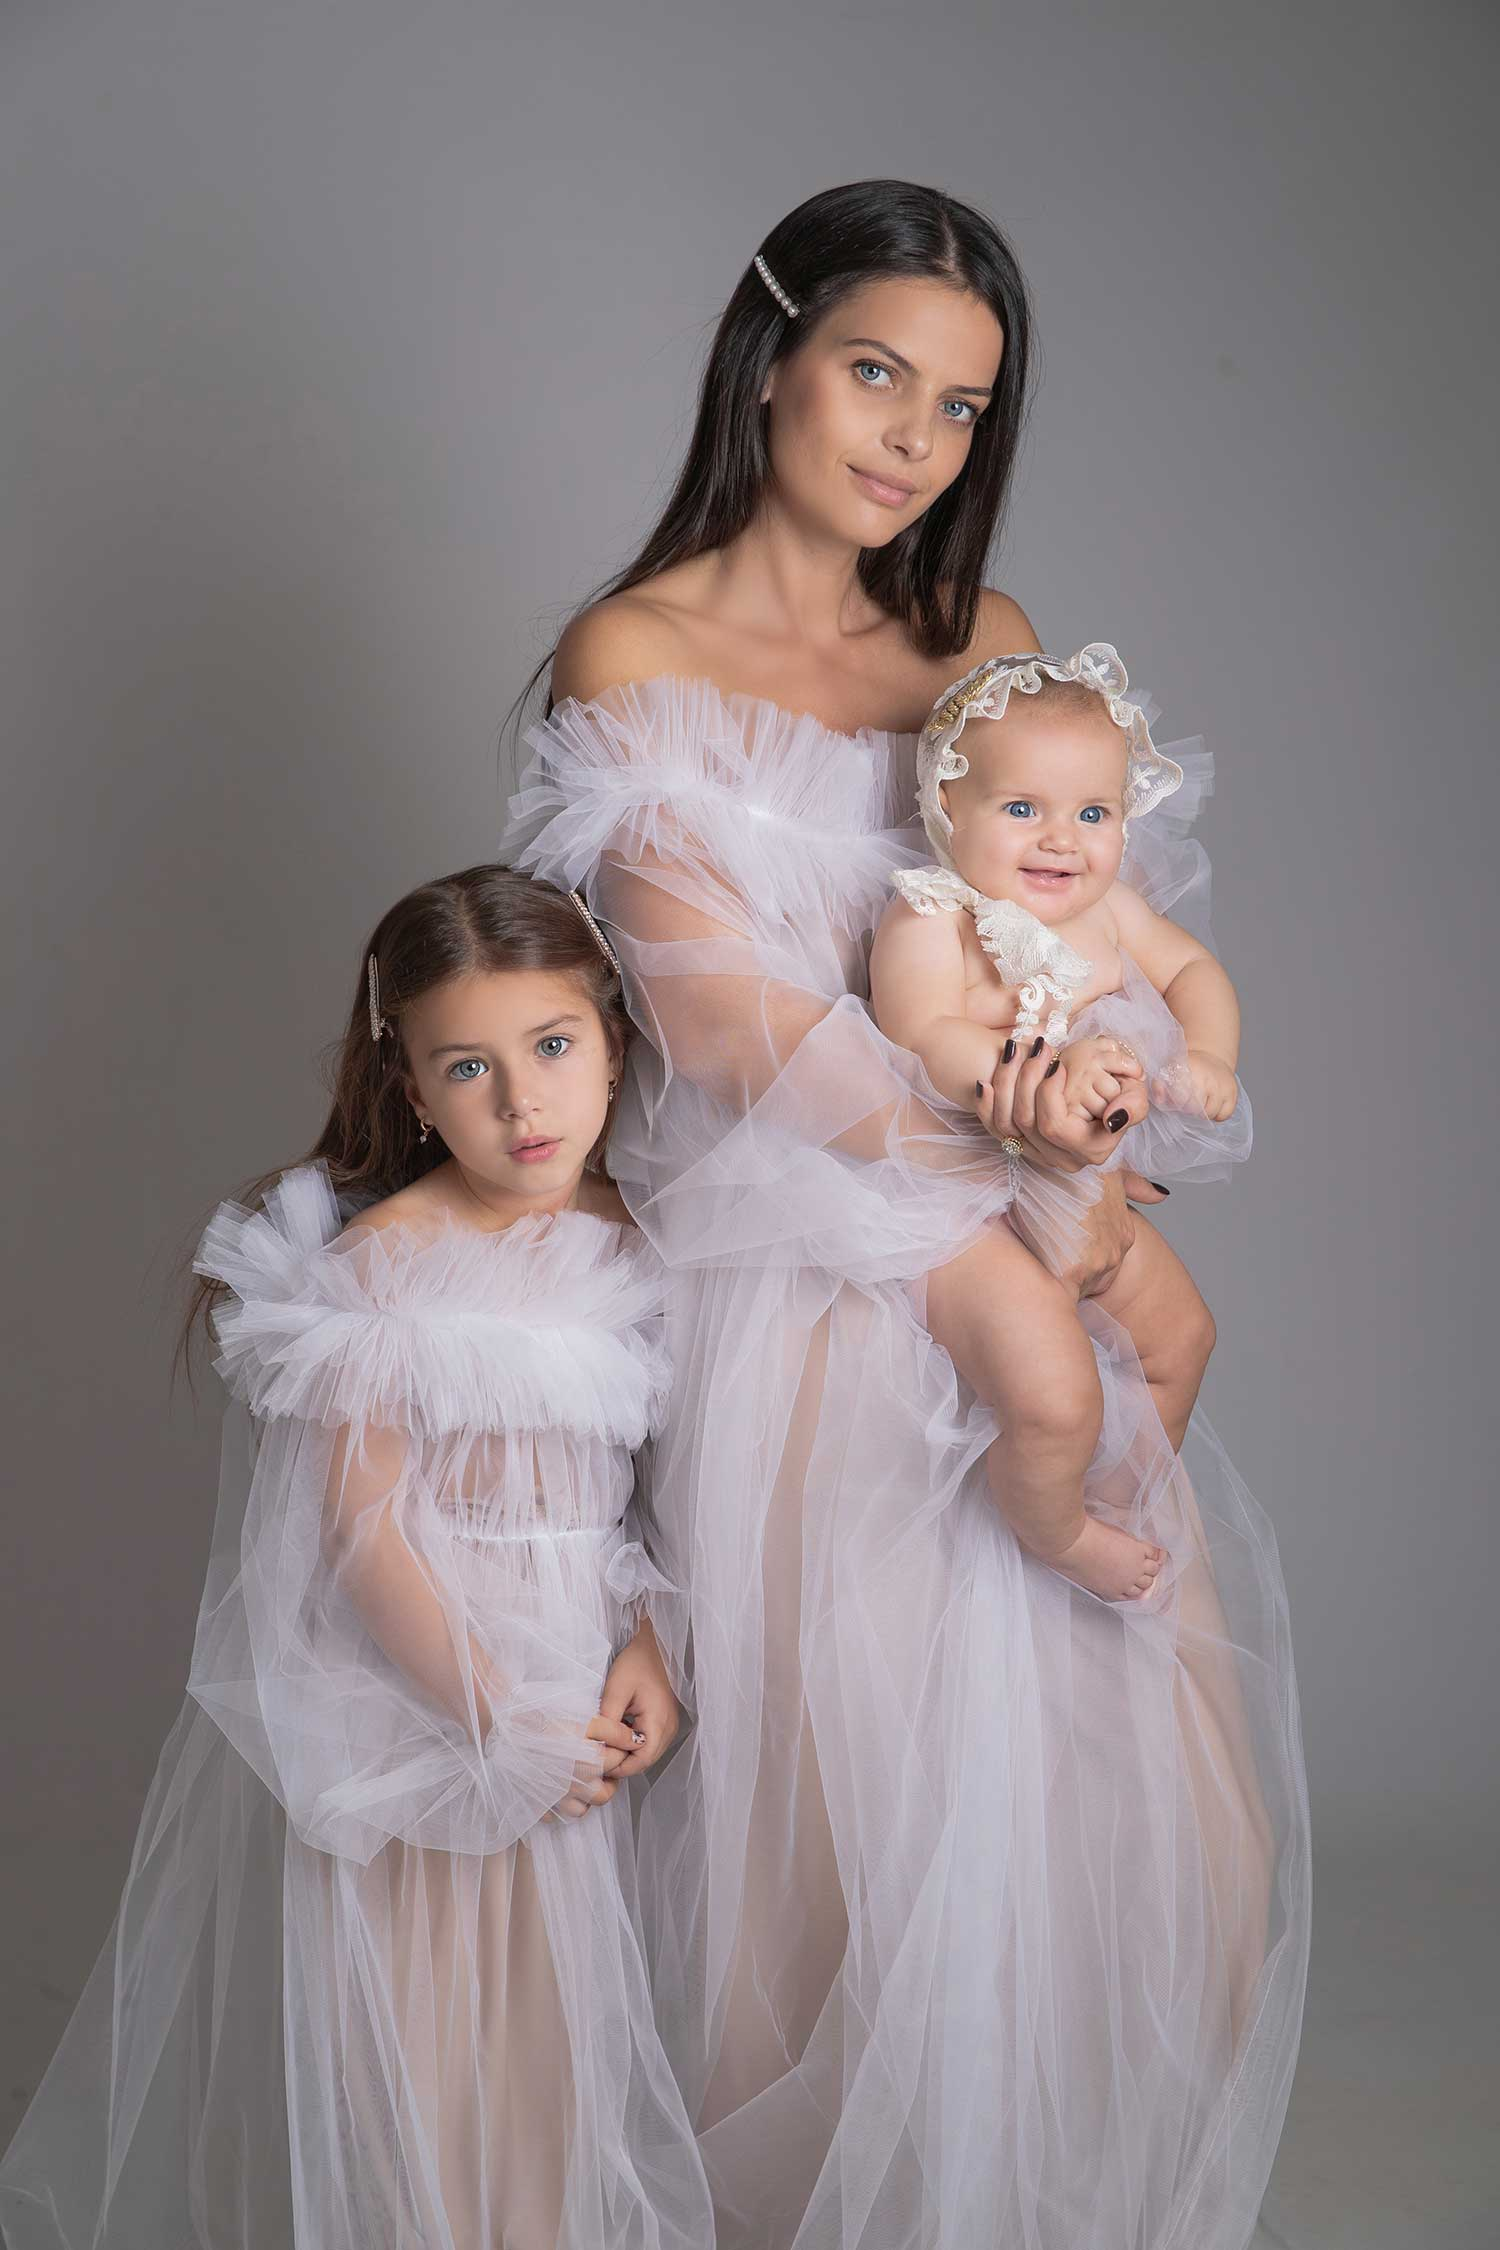 Perfect portraits of a mother and her daughters